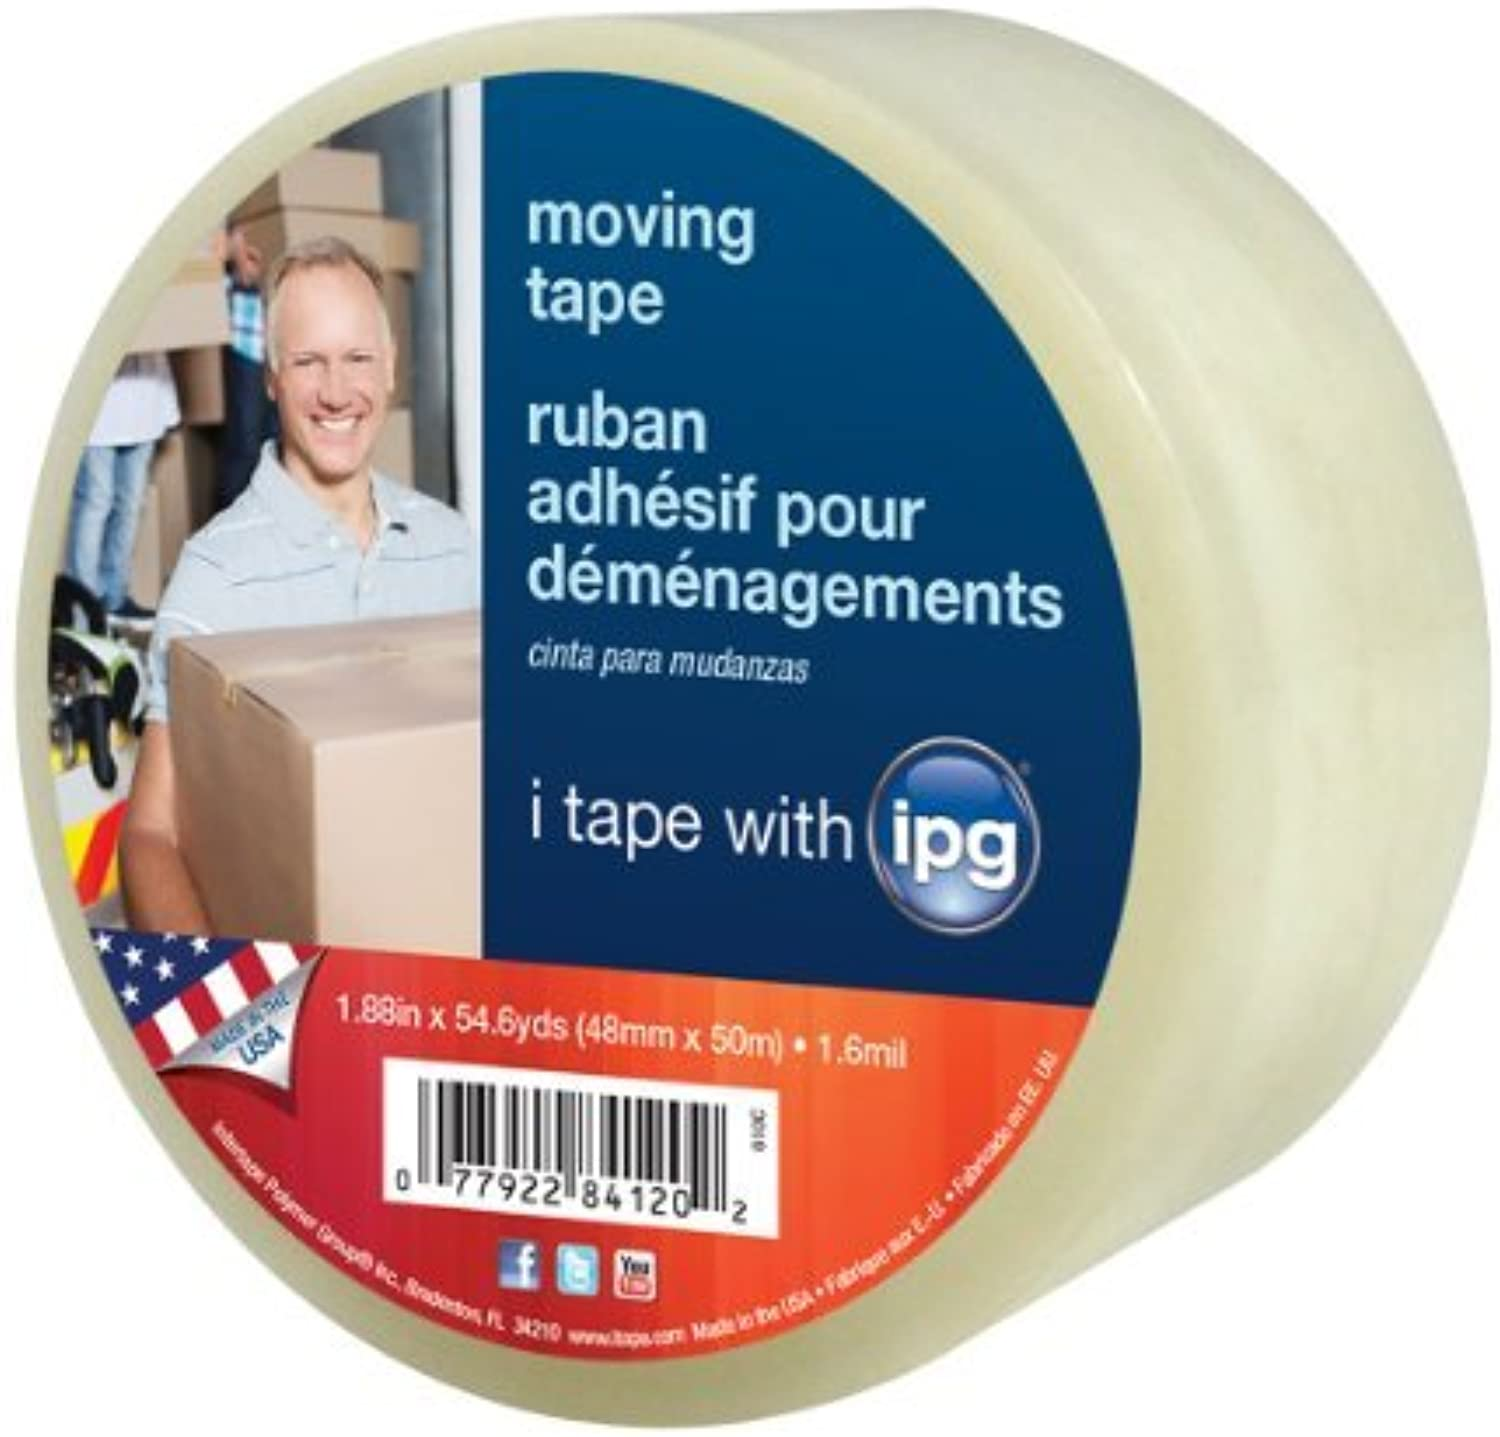 Intertape 91390 610C Hot Melt Moving Tape, 1.88-Inch by 54.6-Yard, 1.6 mil, Clear by Intertape Polymer Group